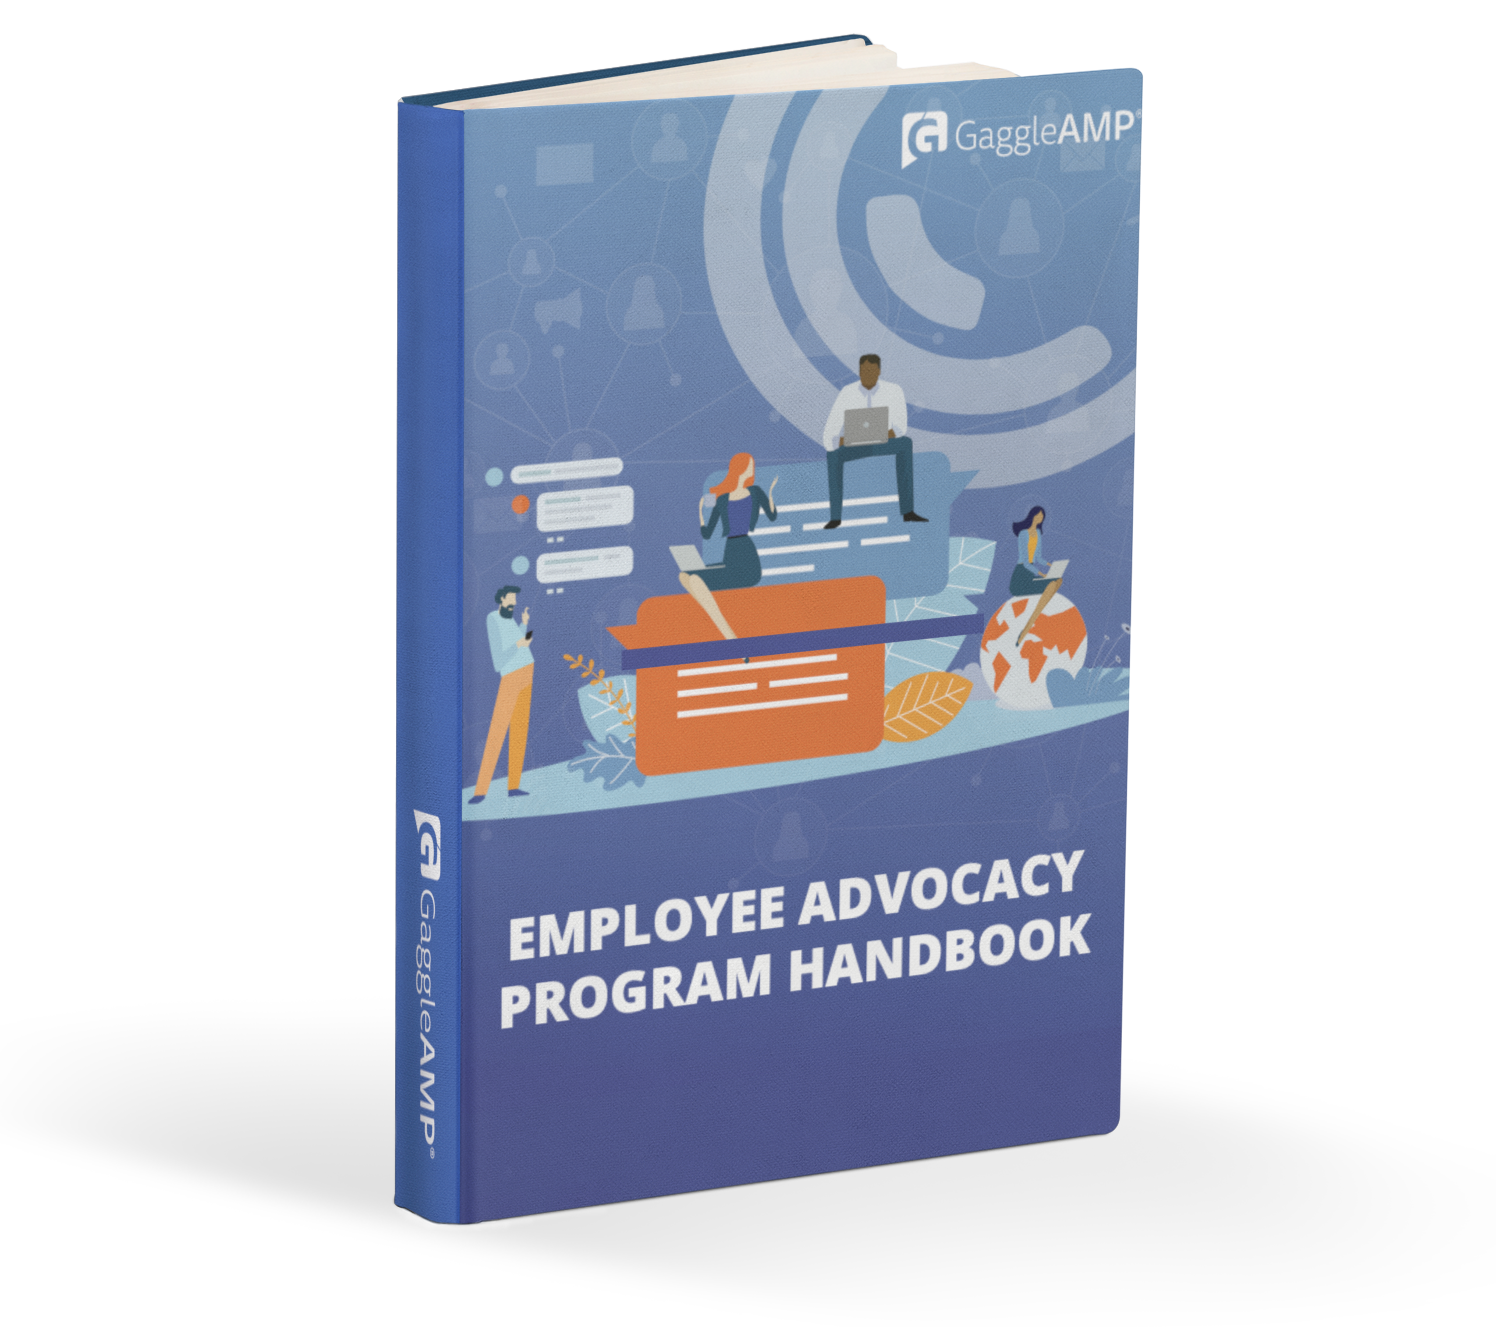 Employee-Advocacy-Workbook-with-GaggleAMP_web